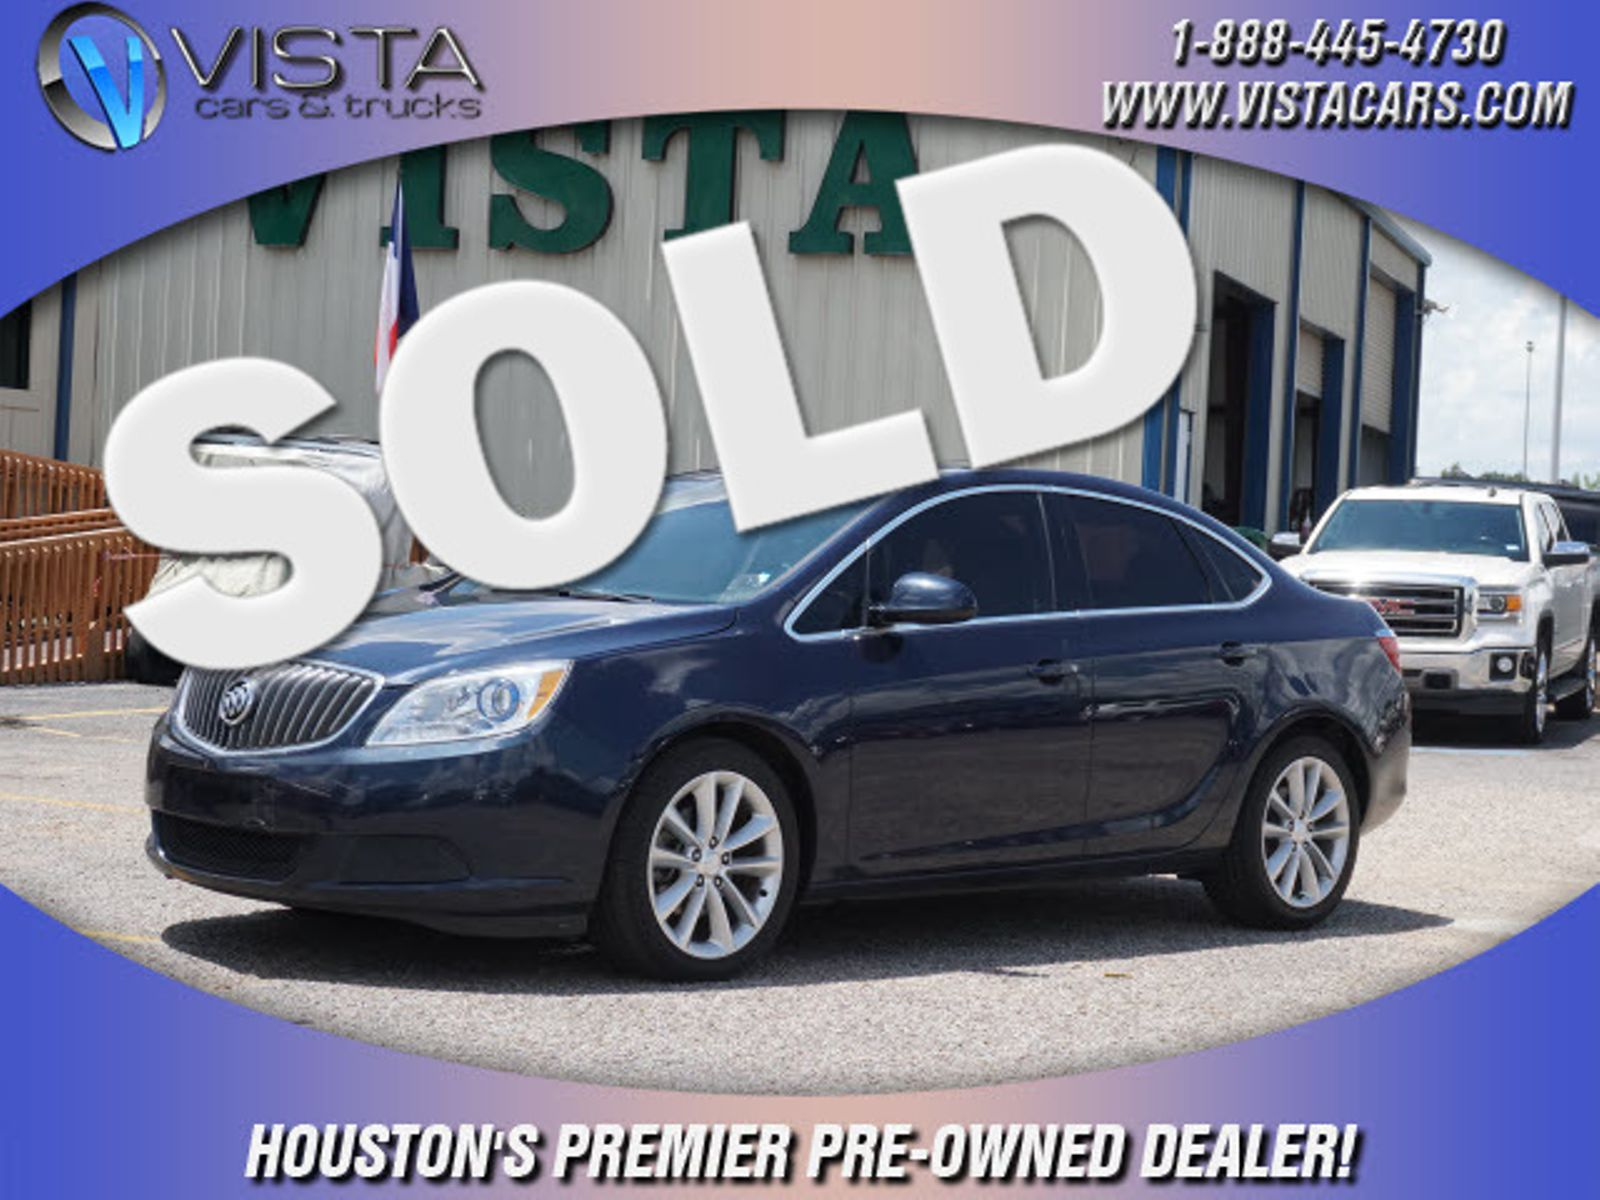 2015 Buick Verano City Texas Vista Cars And Trucks Rear View Camera In Houston